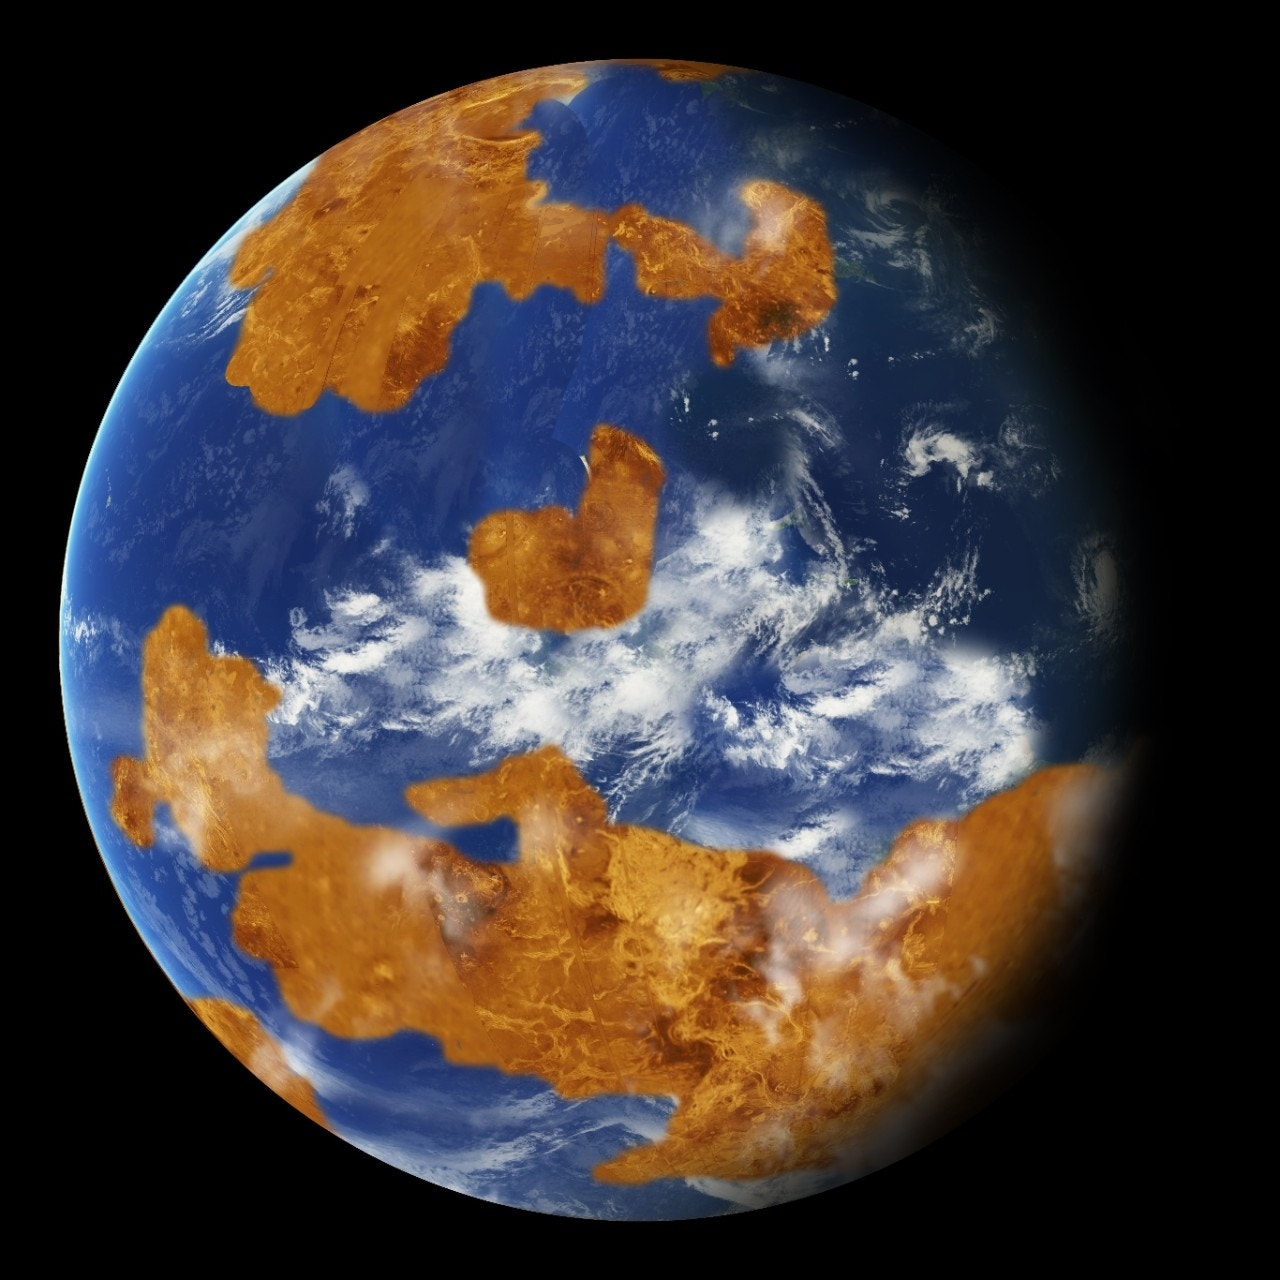 Venus could have once been habitable, NASA says | Fox News